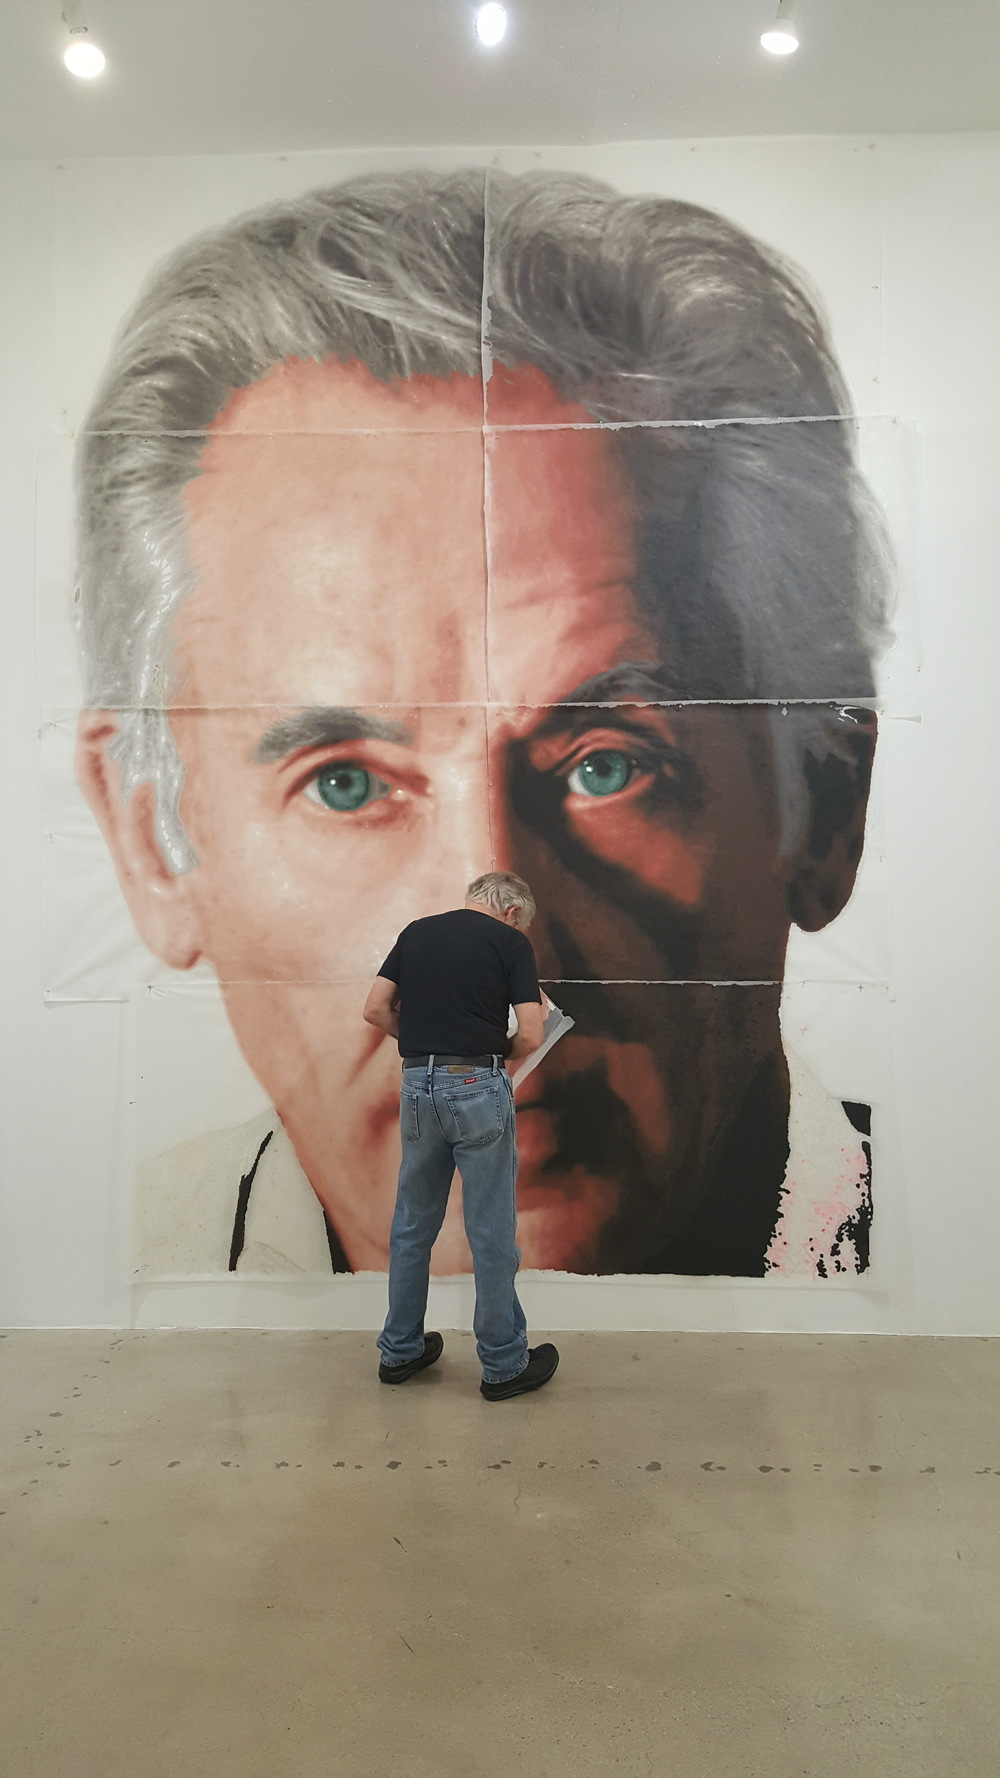 Kent completing the face of the mural